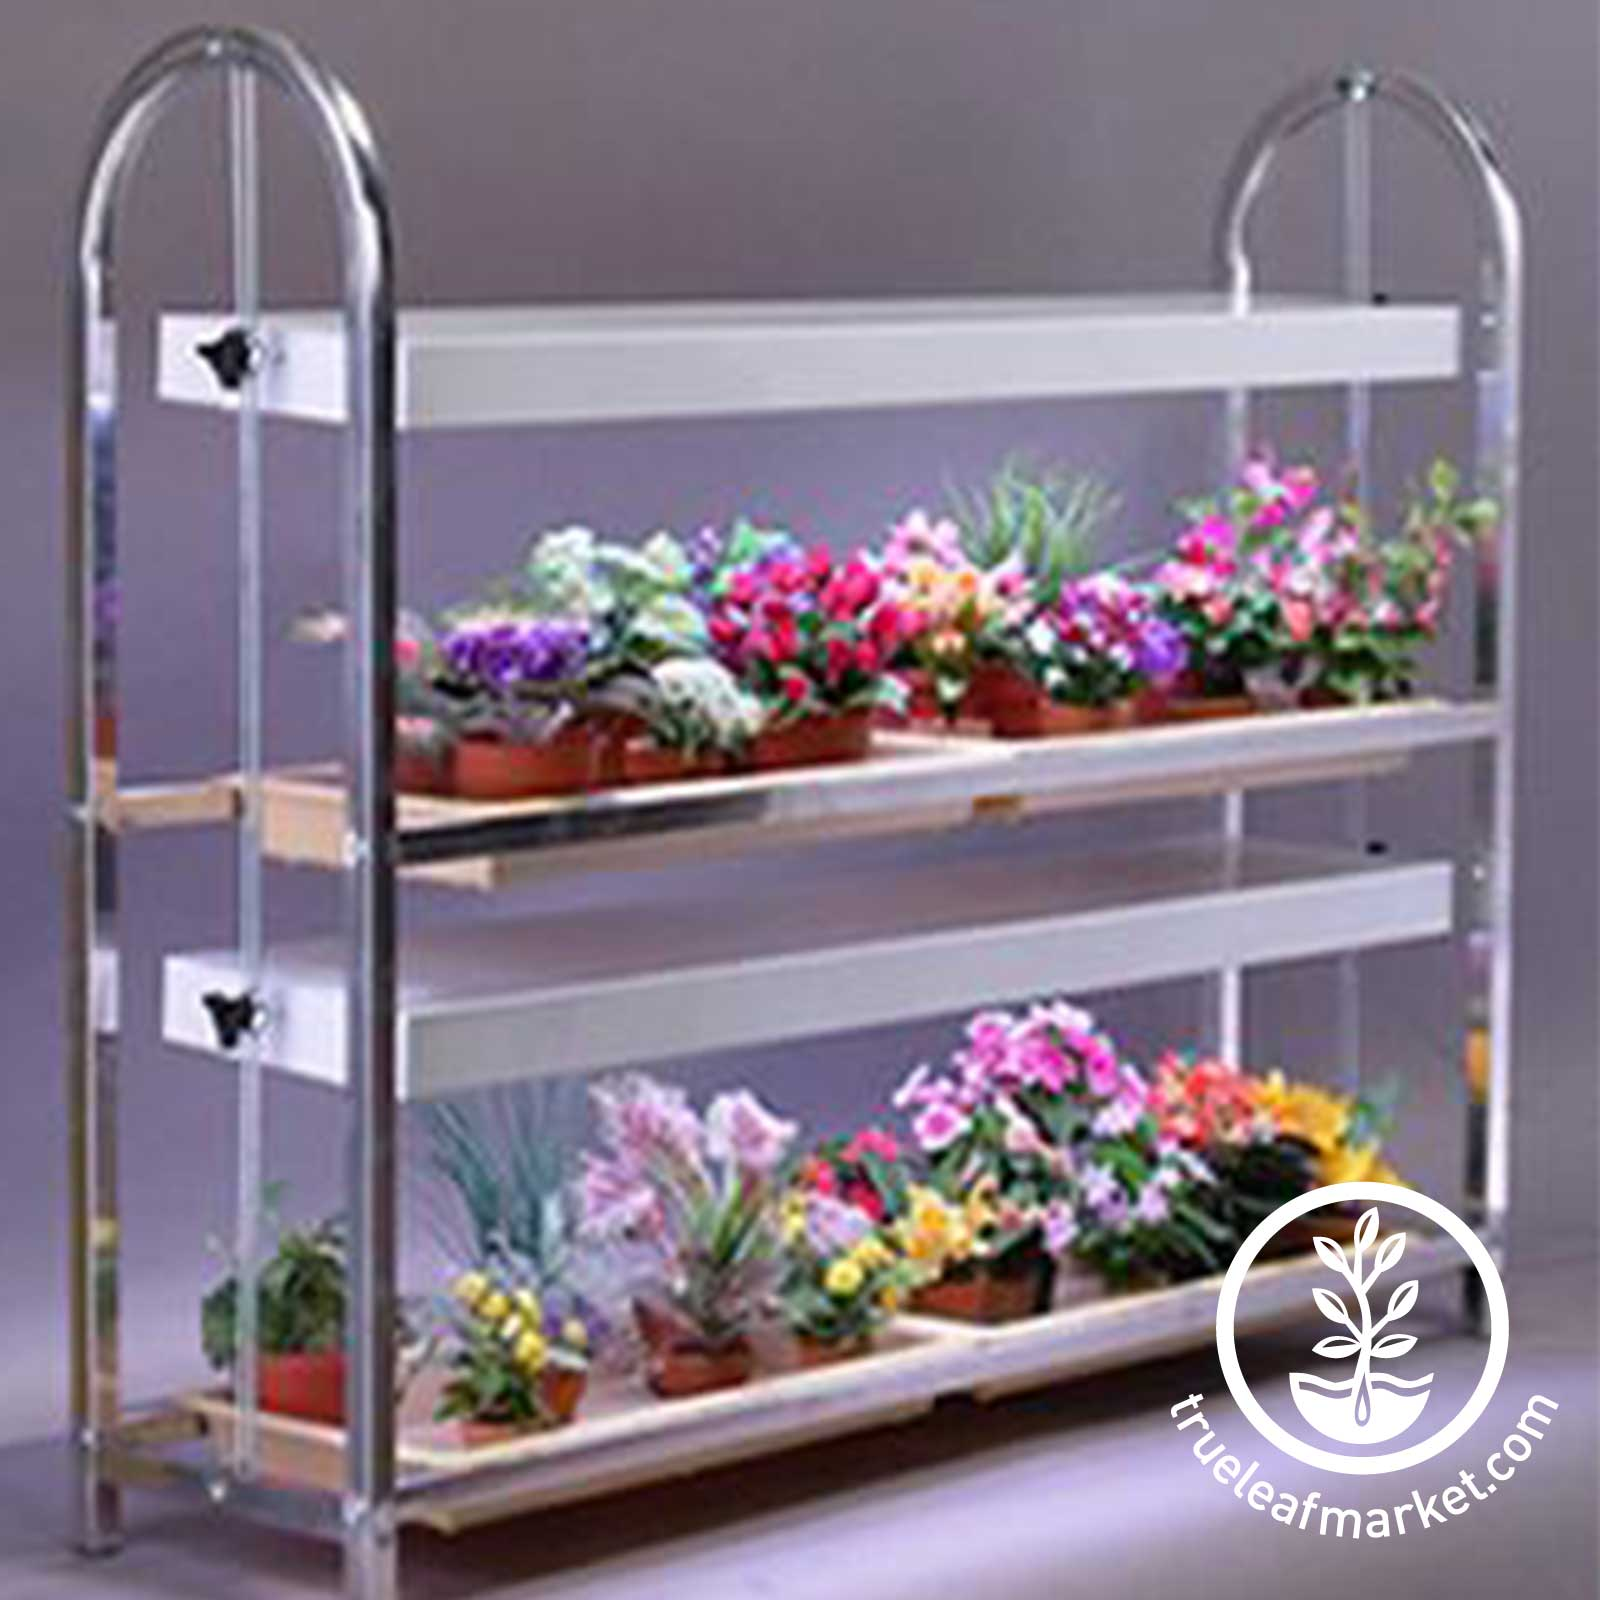 Four Tray 2 Shelf Microgreens Growing Stand